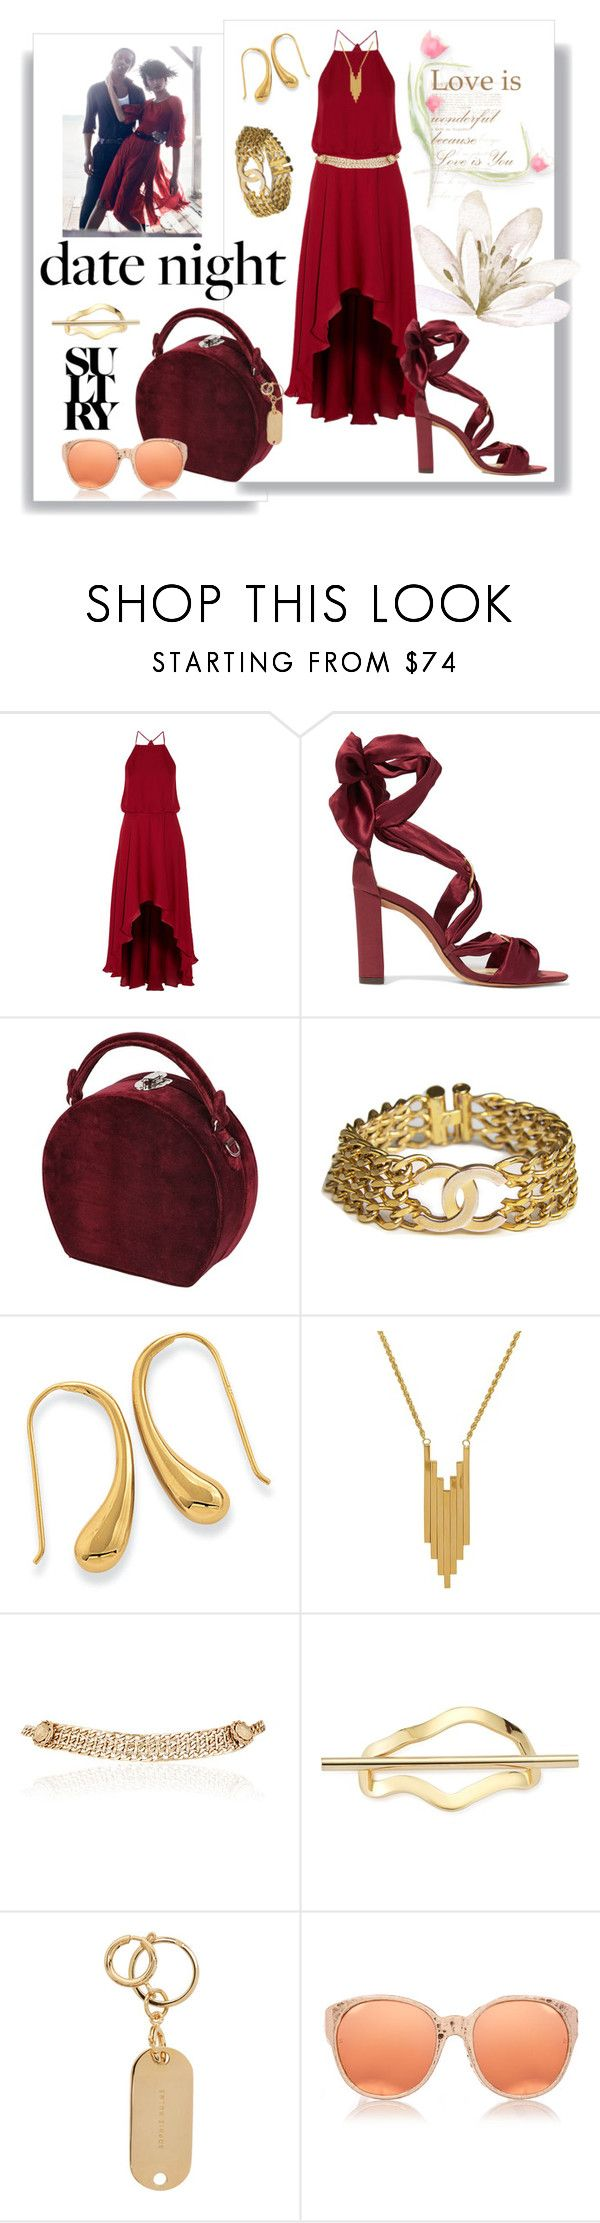 """Hot Summer Date"" by kelly-floramoon-legg ❤ liked on Polyvore featuring Haute Hippie, Alexandre Birman, Bertoni, Chanel, Lord & Taylor, Maison Mayle, Elizabeth and James, Sophie Hulme, Linda Farrow and summerdatenight"